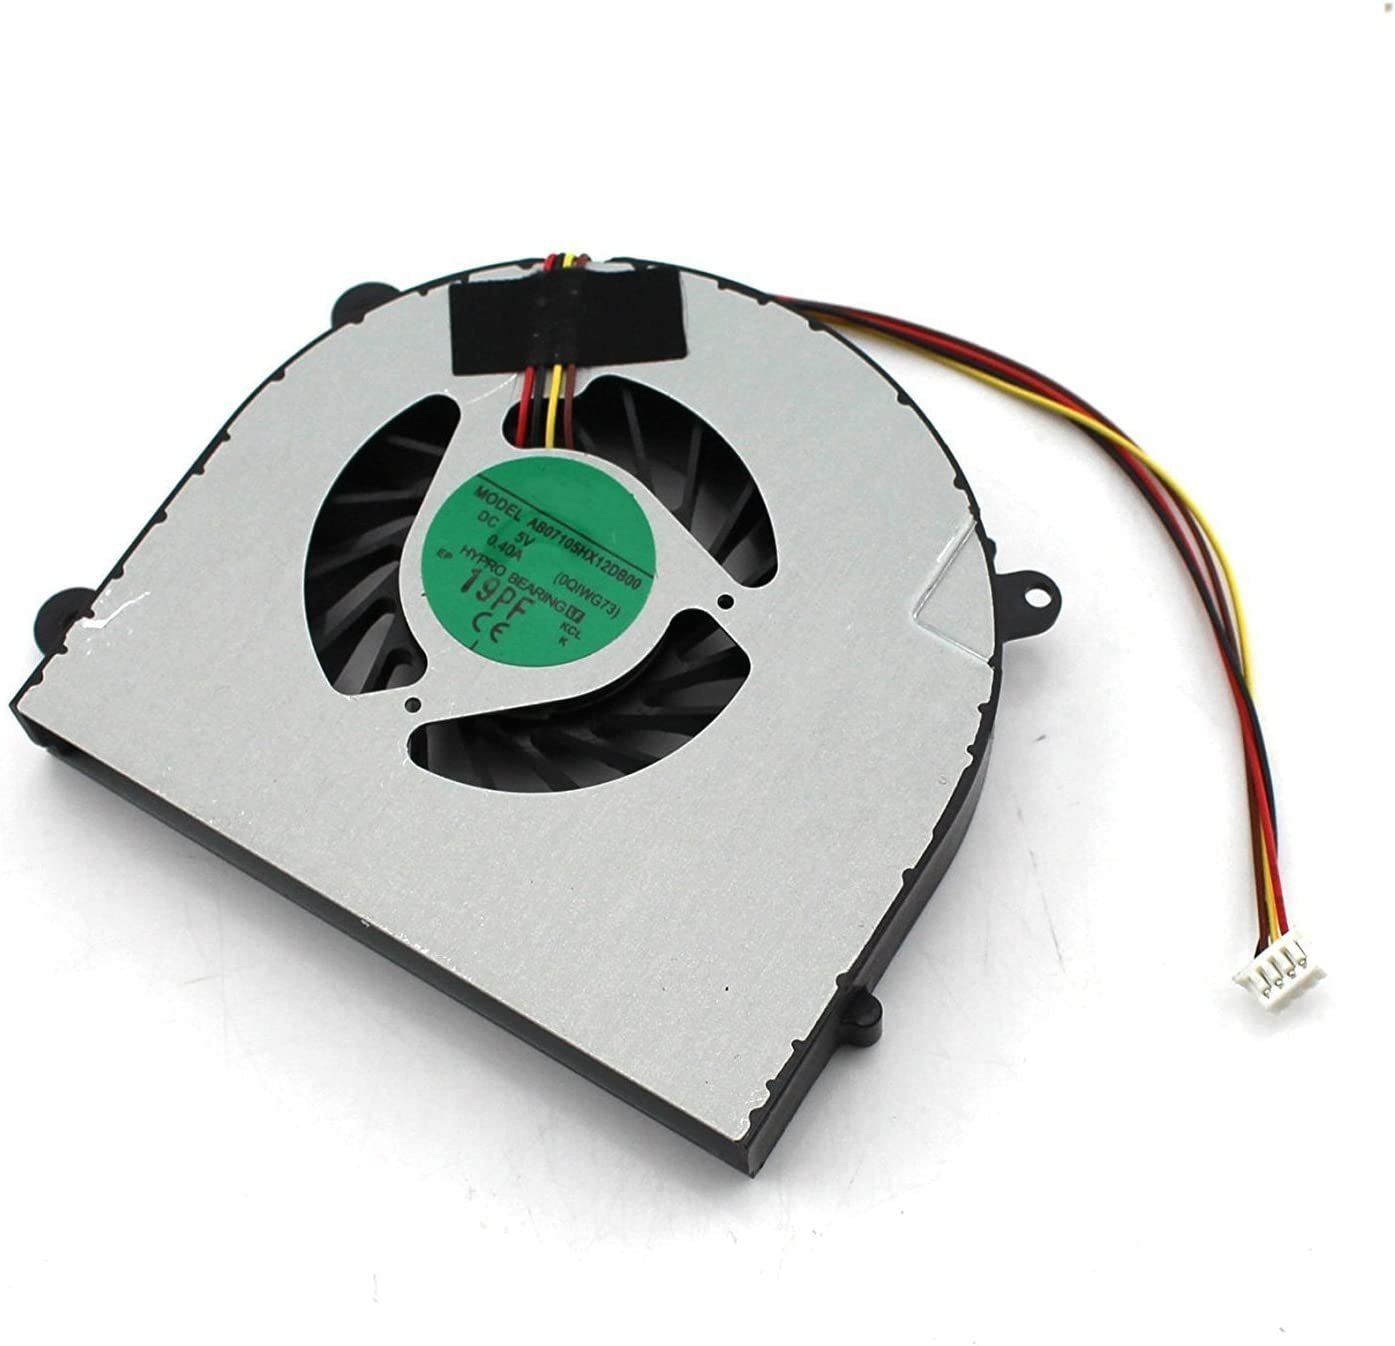 iiFix New CPU Cooling Fan Cooler For Lenovo Ideapad G770 G780 G770A G780A, P/N:DC28000AIA0